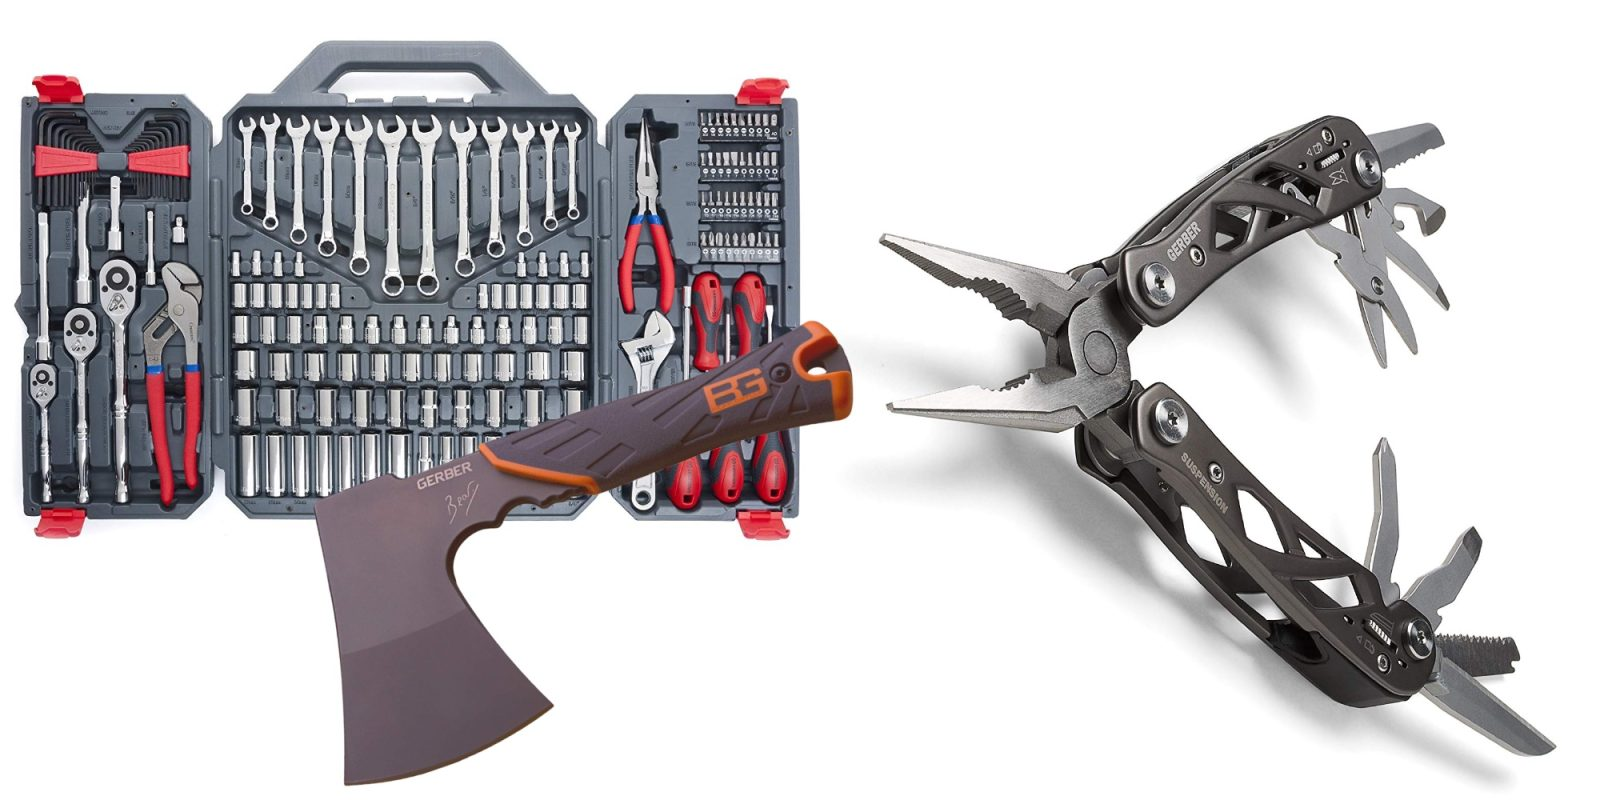 Take up to 30% off Gerber multitools and more from $6 in this Prime Day sale